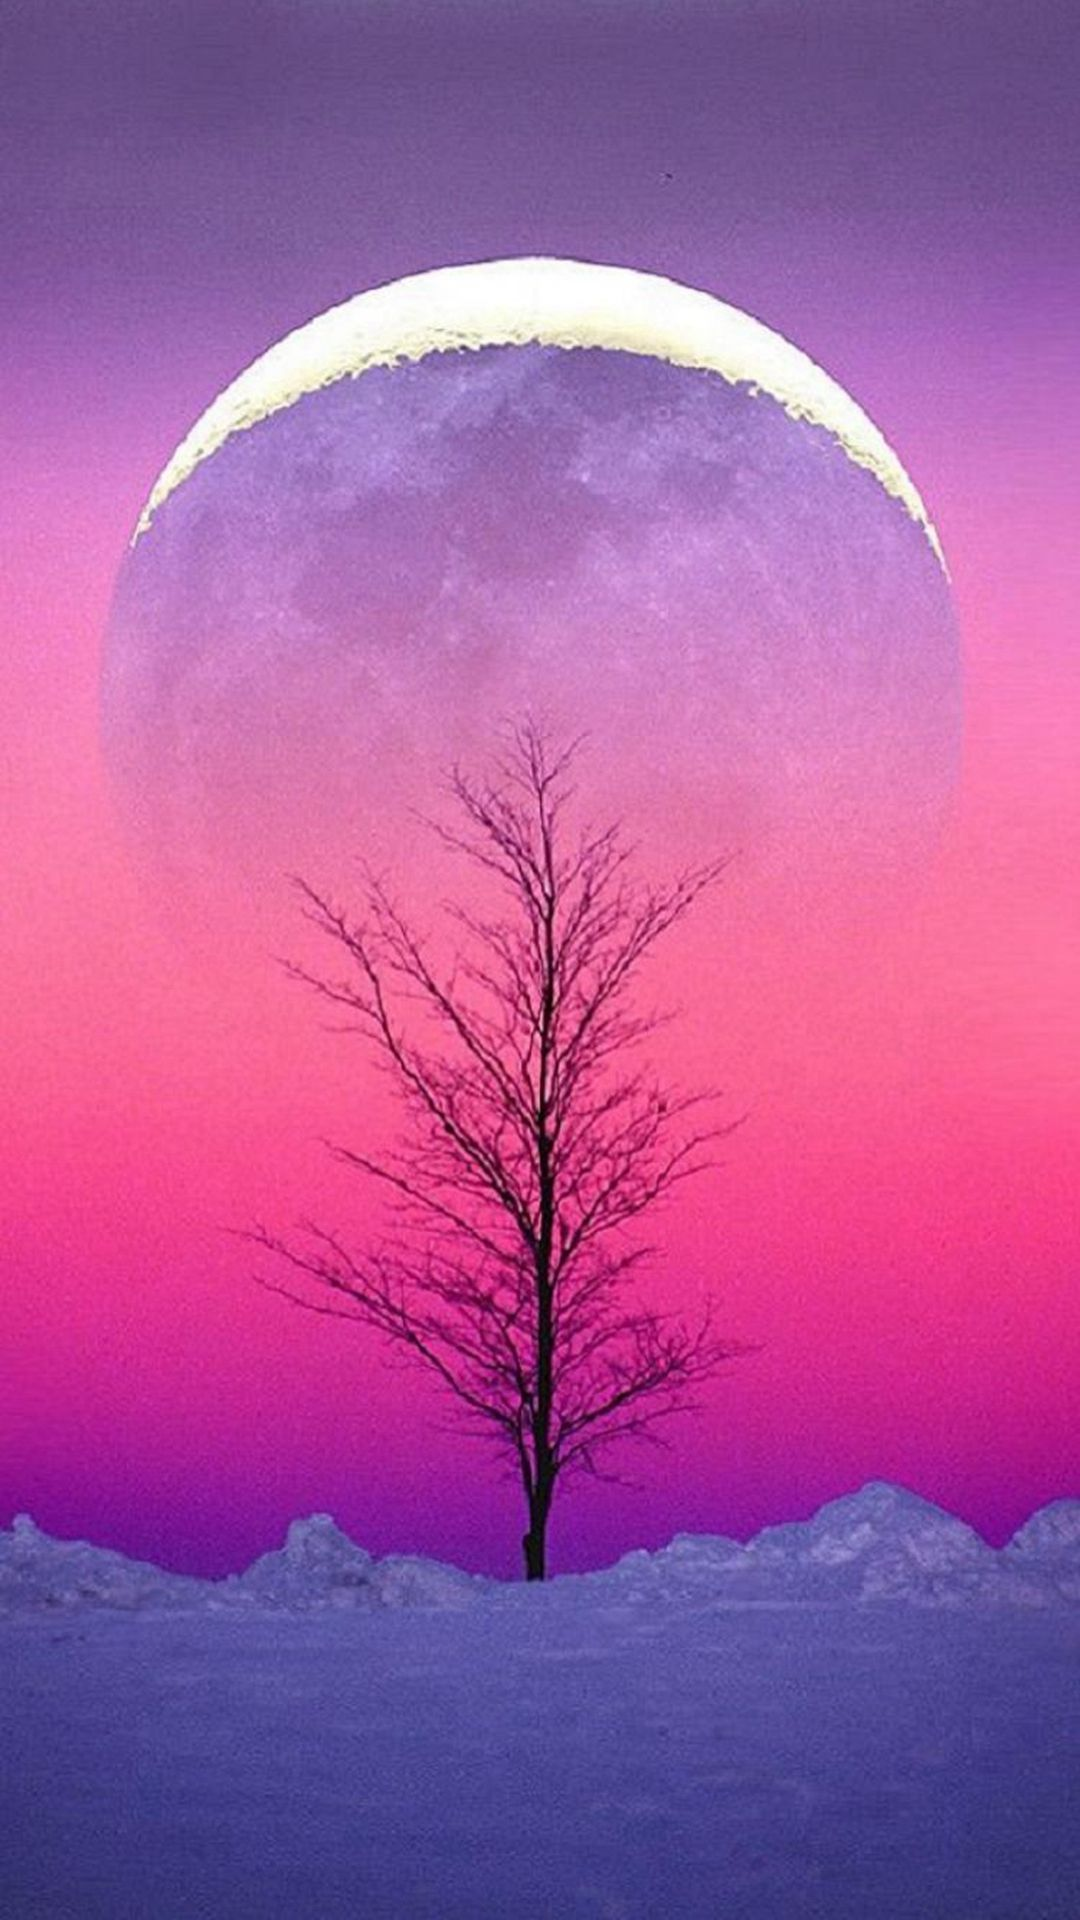 Pure Aesthetic Cold Sky View Iphone 6 Plus Wallpaper Moon Images Aesthetic Wallpapers Christmas Wallpaper Backgrounds